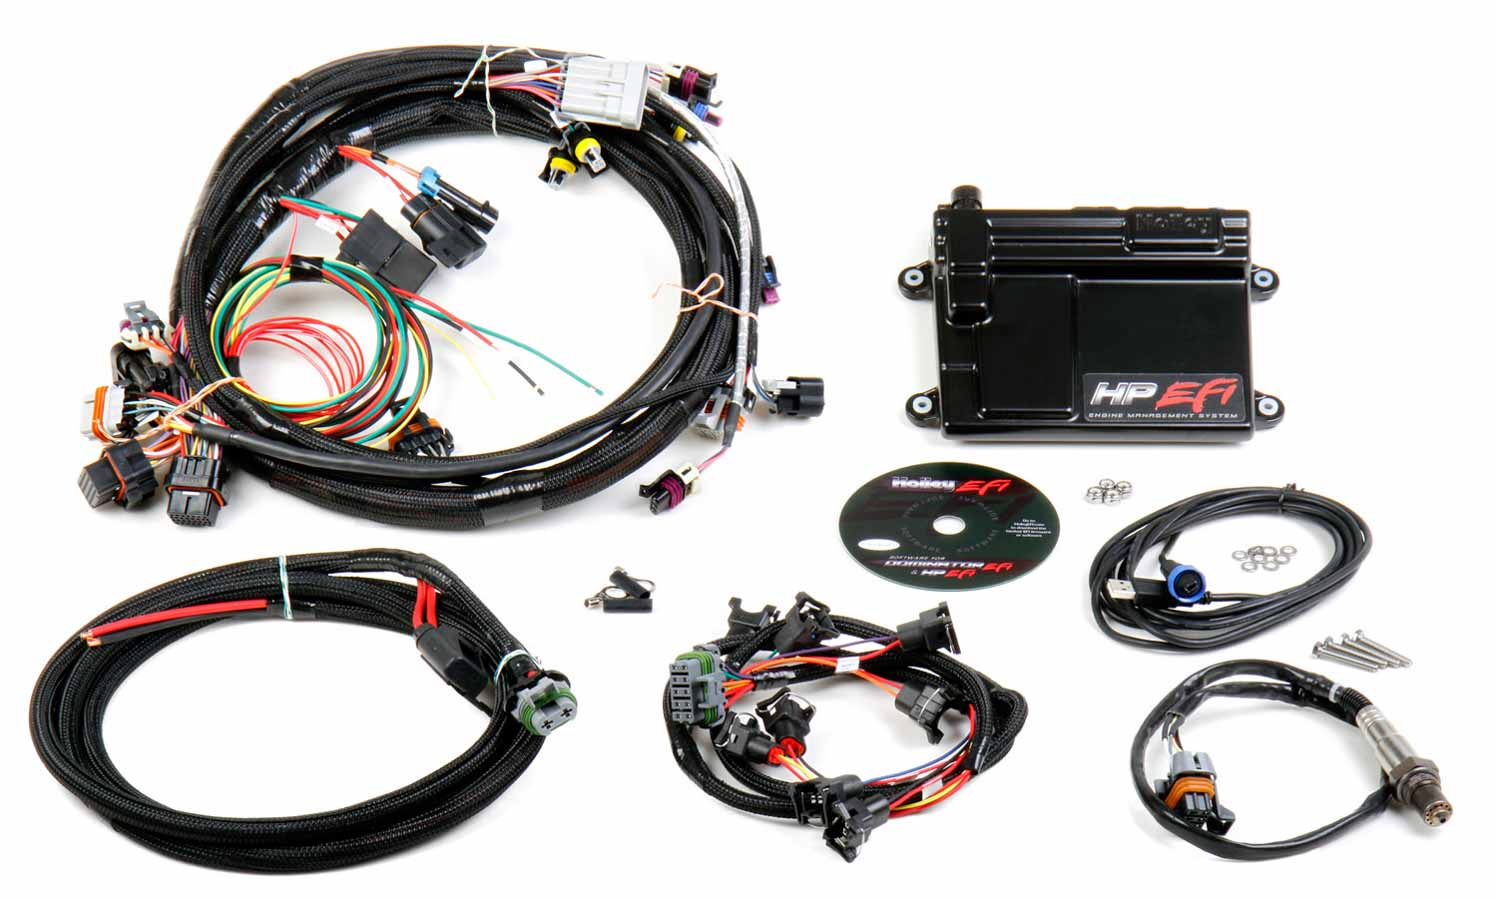 gm efi wiring harness schematic wiring diagrams u2022 rh arcomics co TBI Swap Wiring Harness GMC Truck Wiring Harness